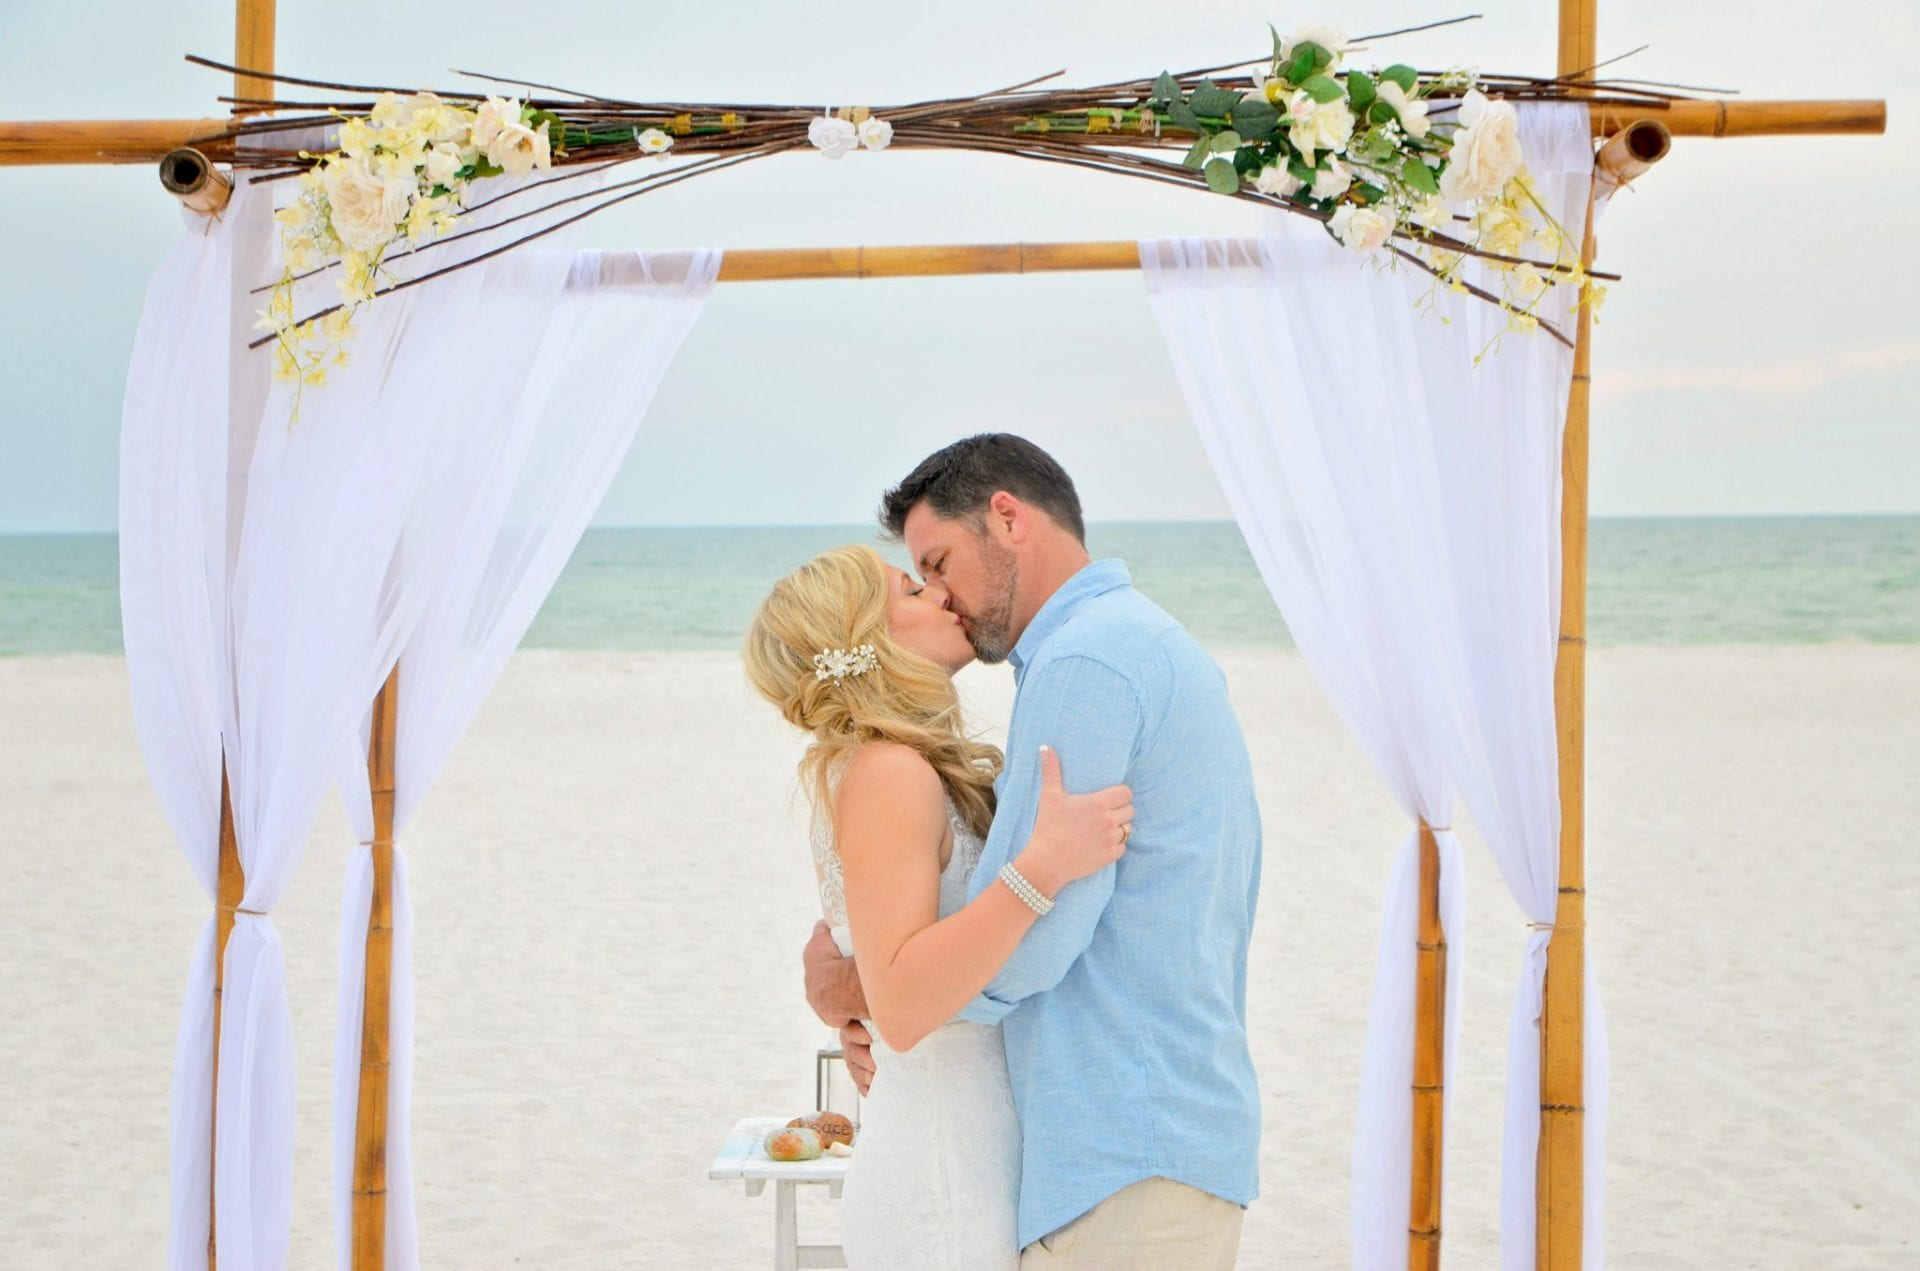 Couple kissing after wedding vows on beach